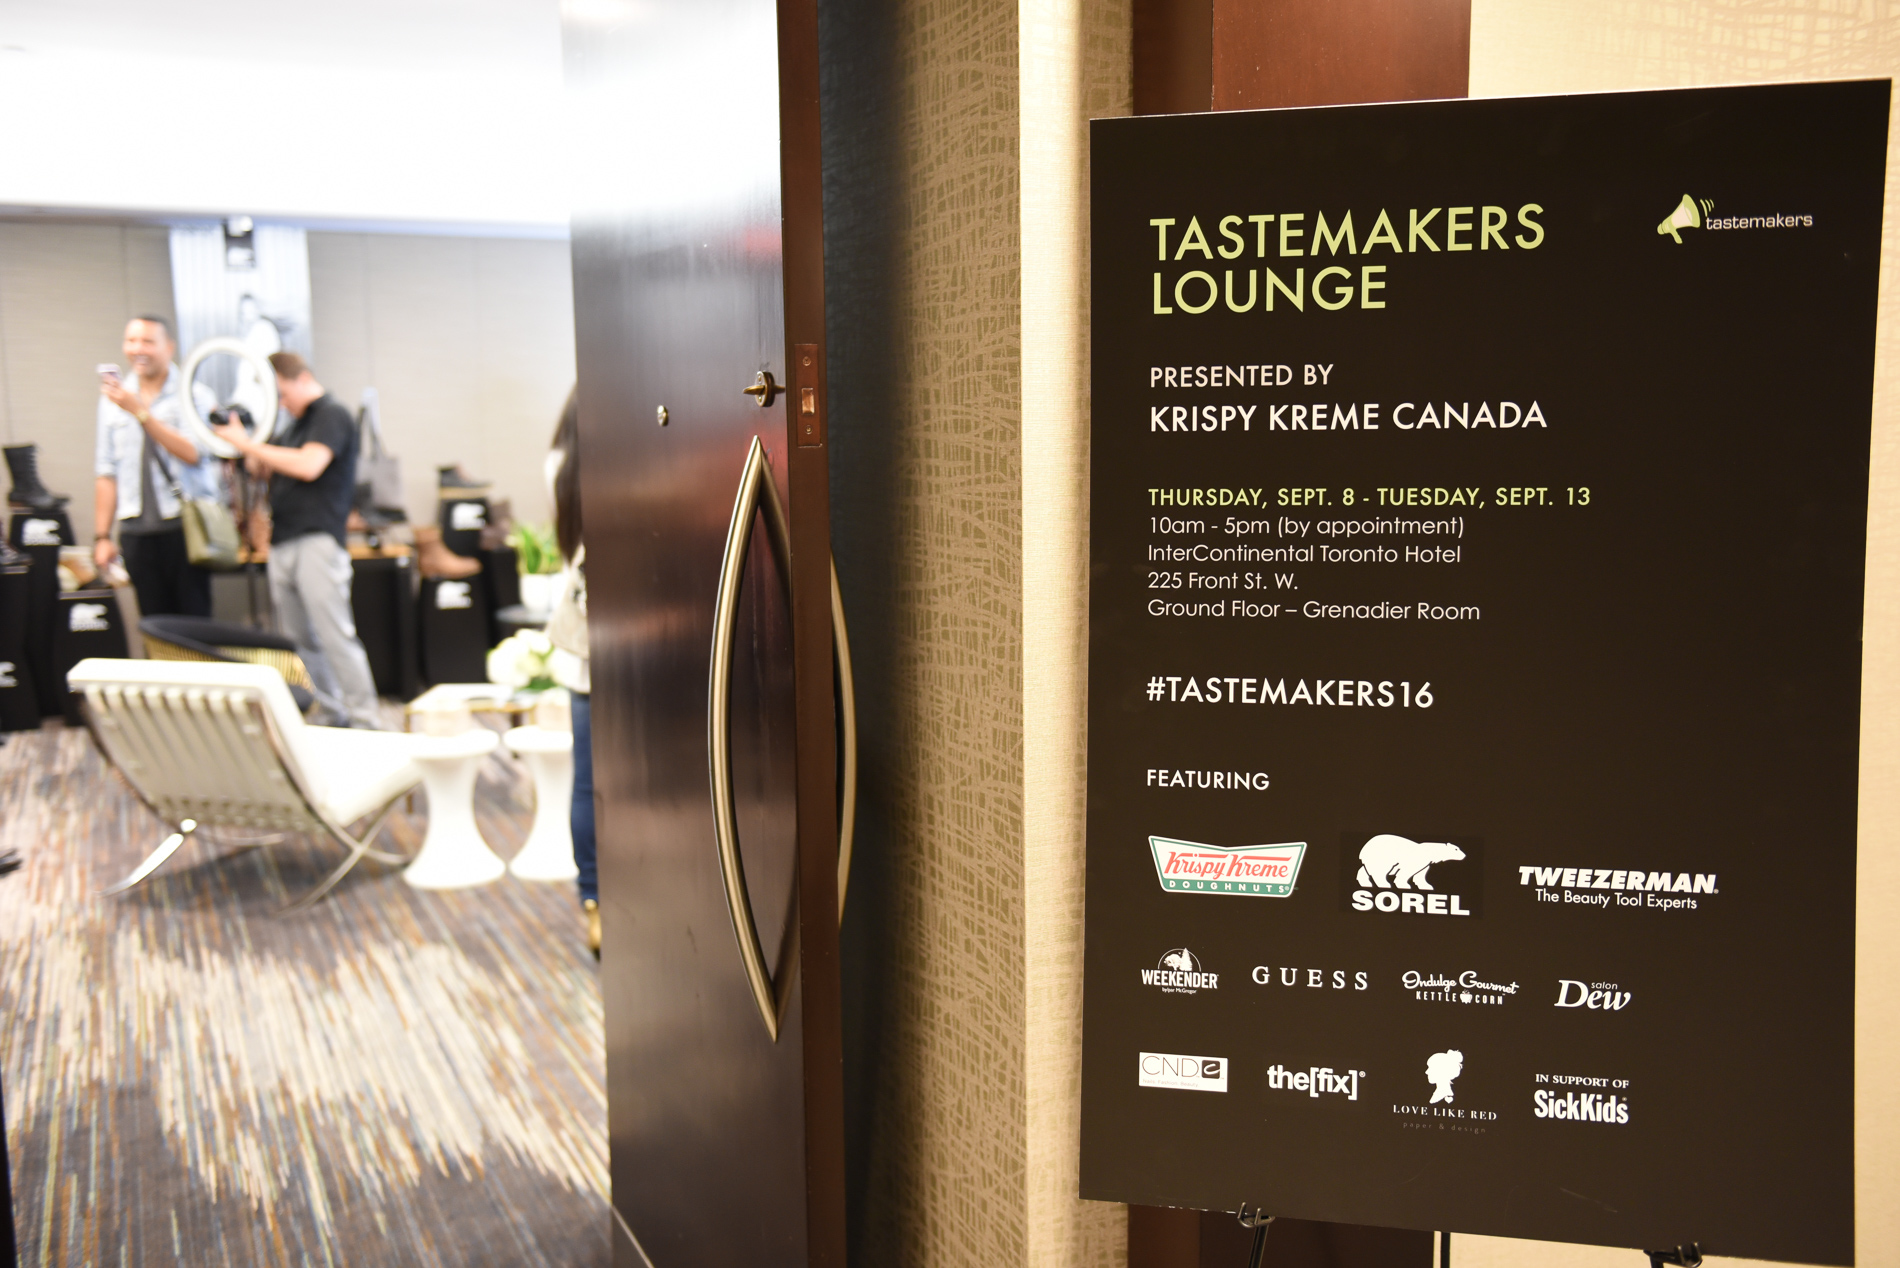 Tastemakers 2016 Lounge Courtesy Use Central Image Agency CentralimageAgency@icloud.com